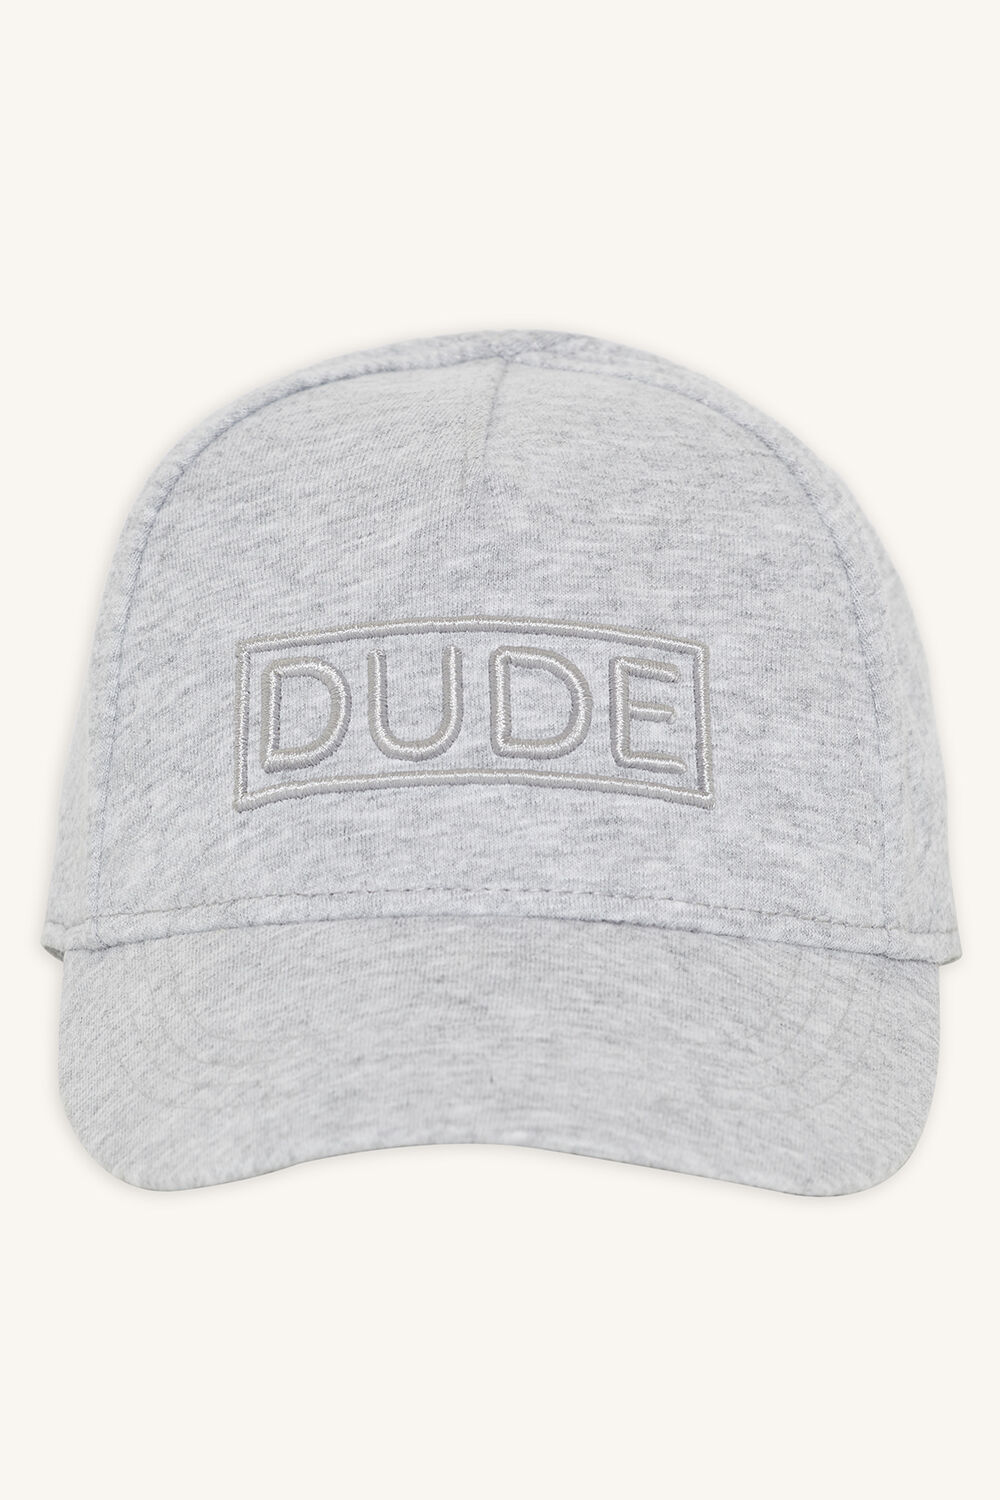 DUDE TODDLER JERSEY CAP in colour LIGHT GRAY